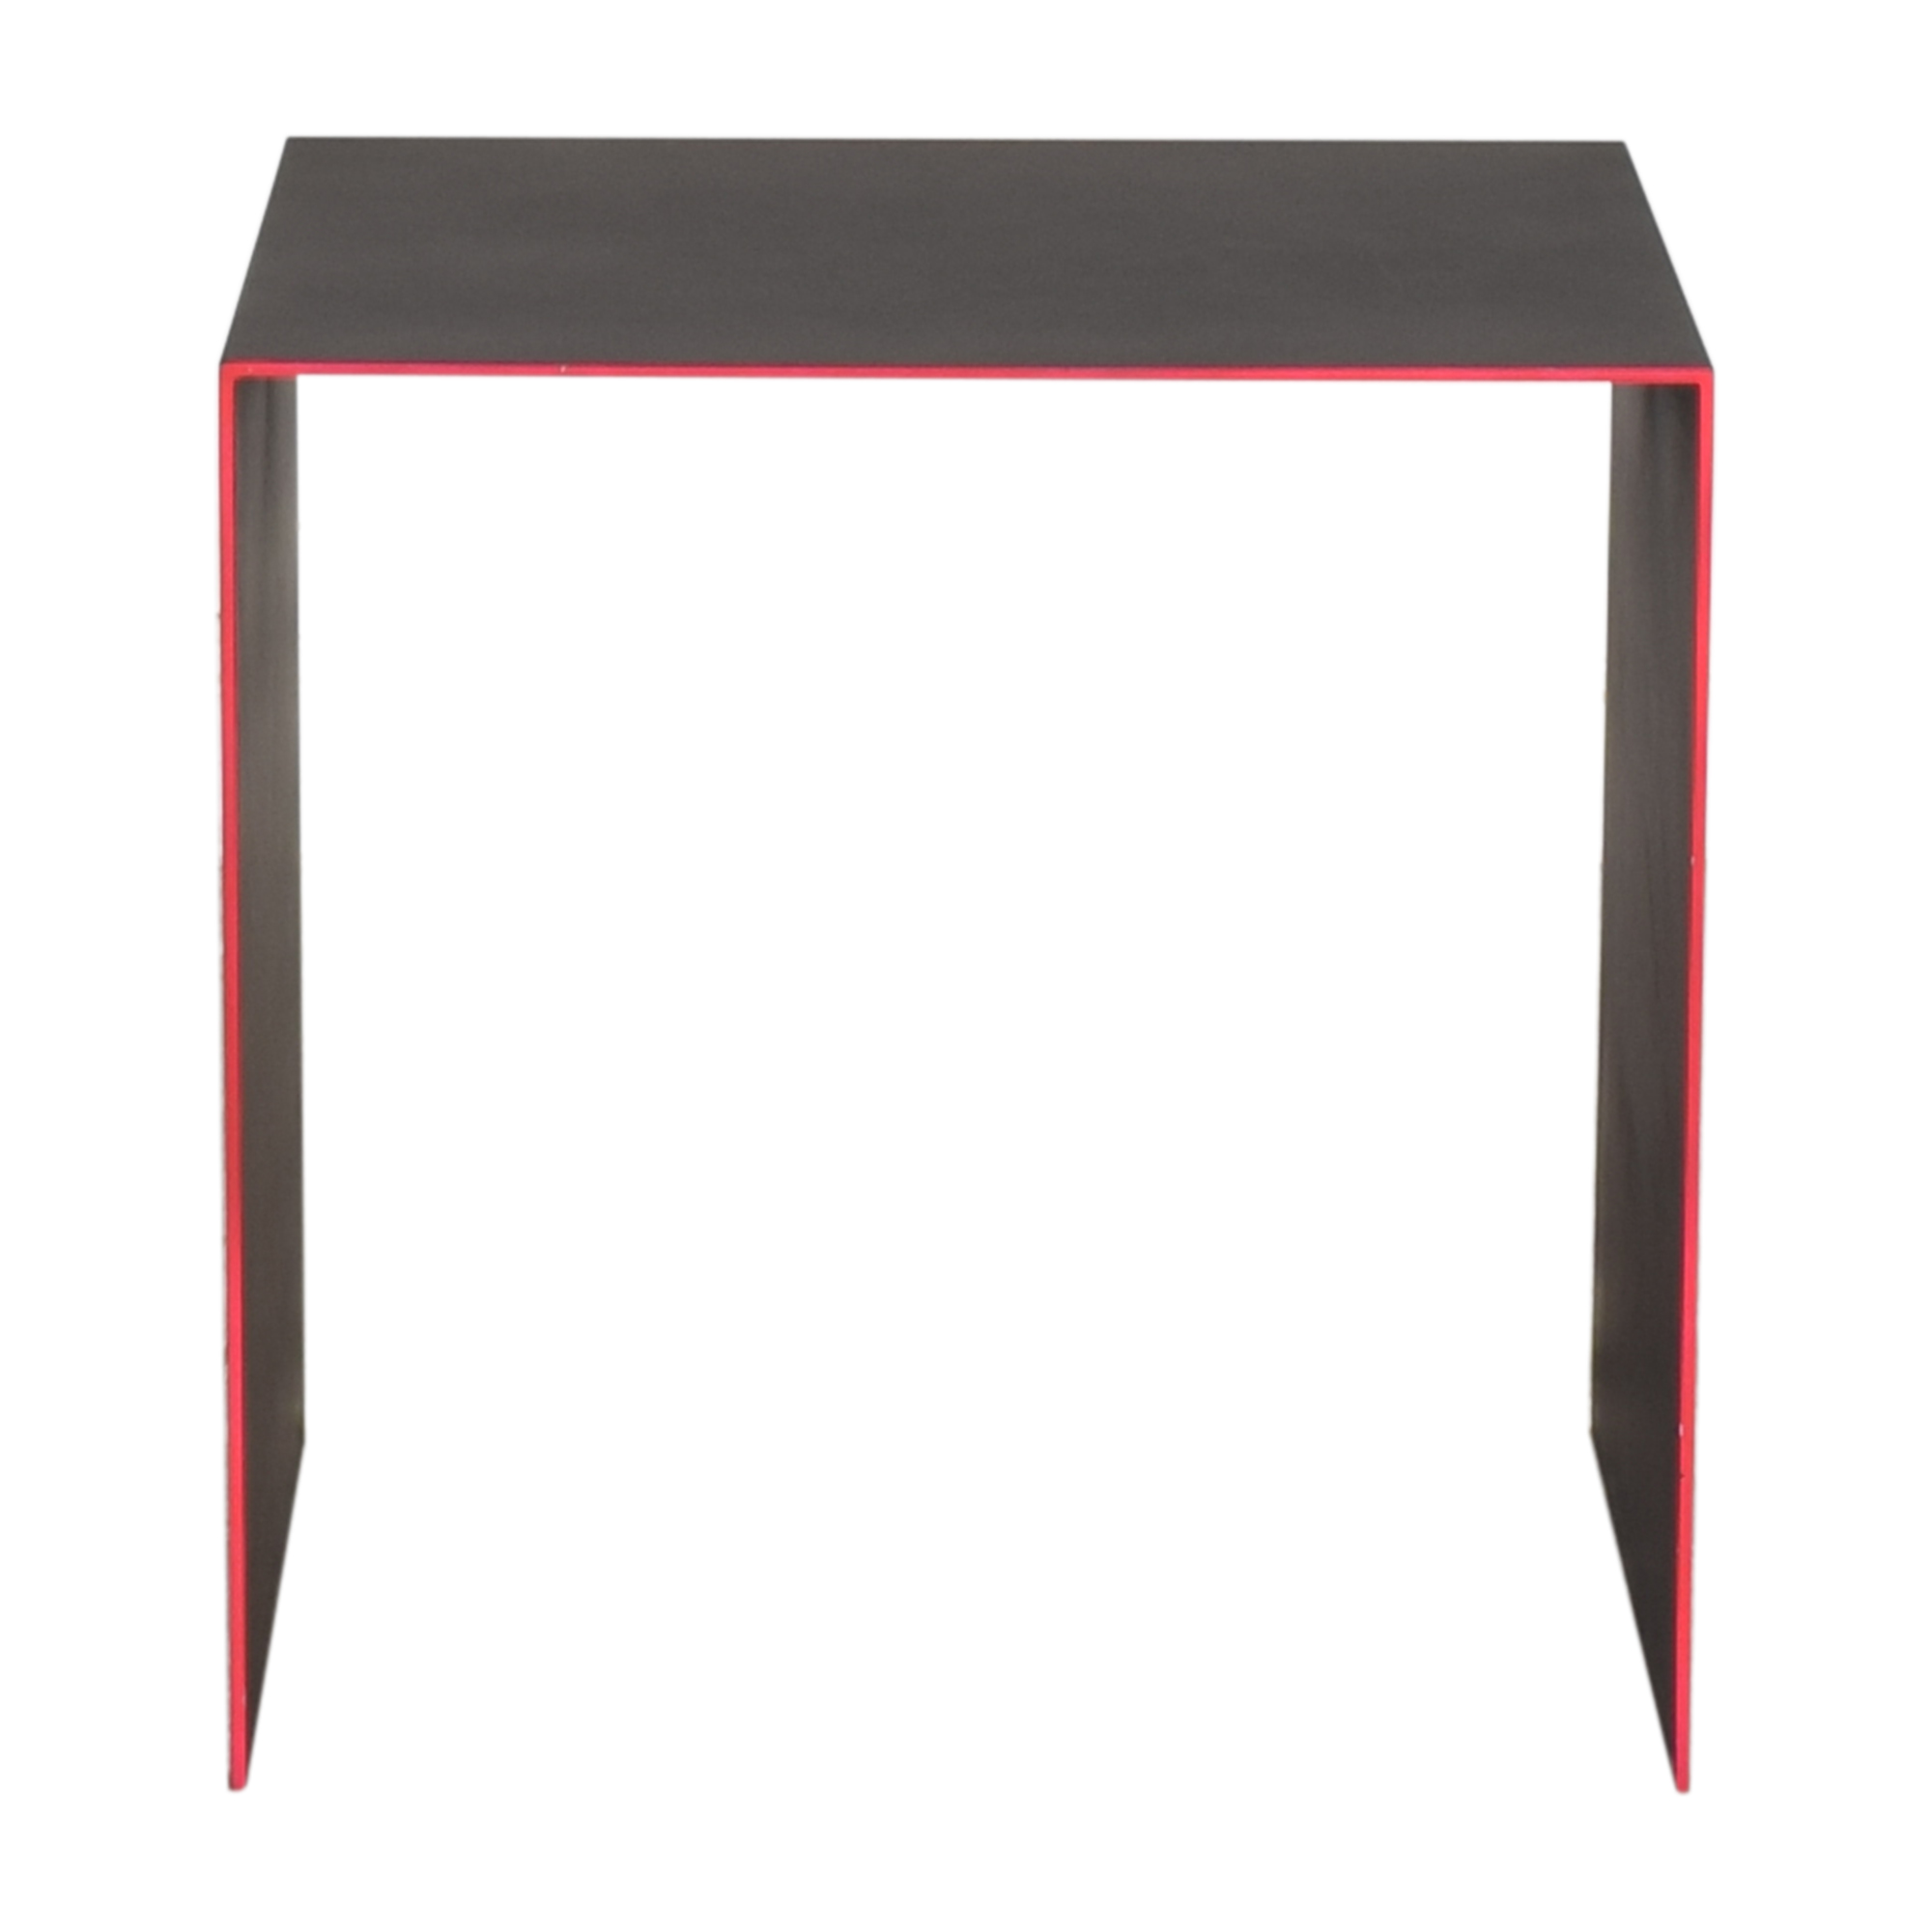 ABC Carpet & Home ABC Carpet & Home abcDNA Fluid Steel End Table price